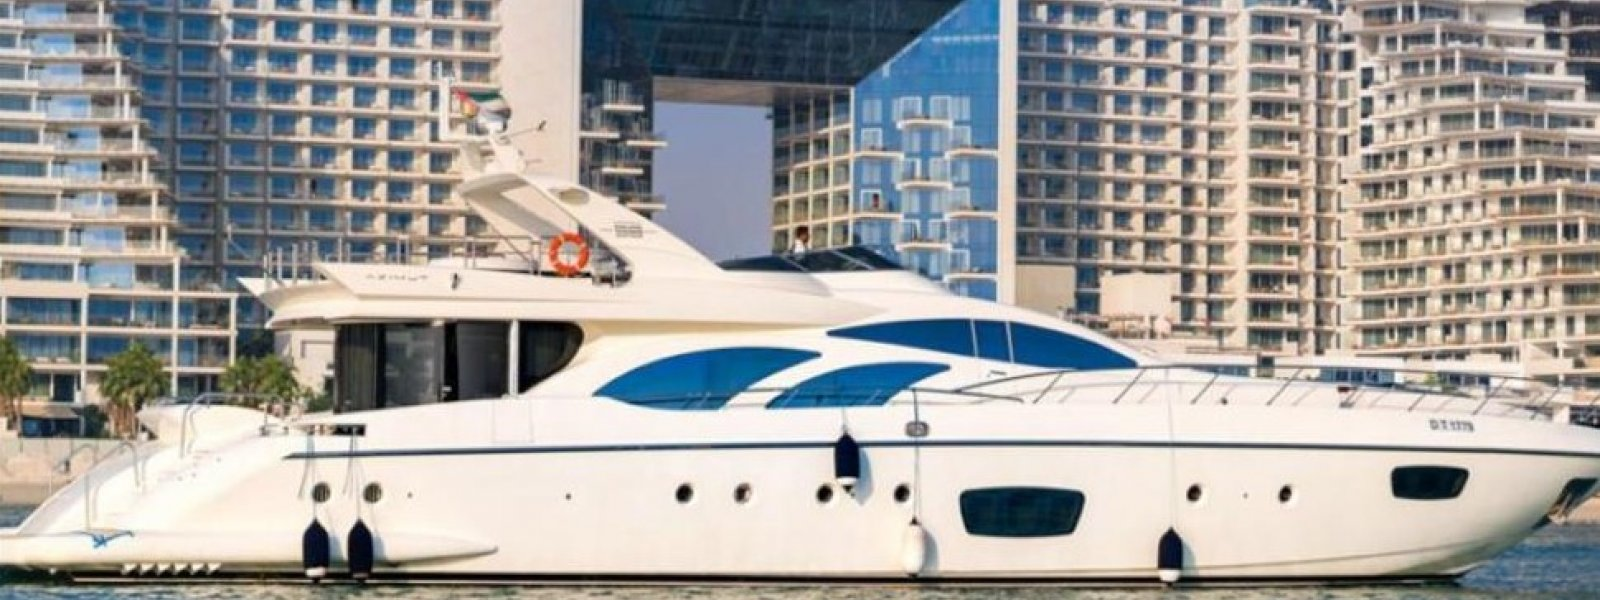 Azimut 100 Feet Luxury Yacht